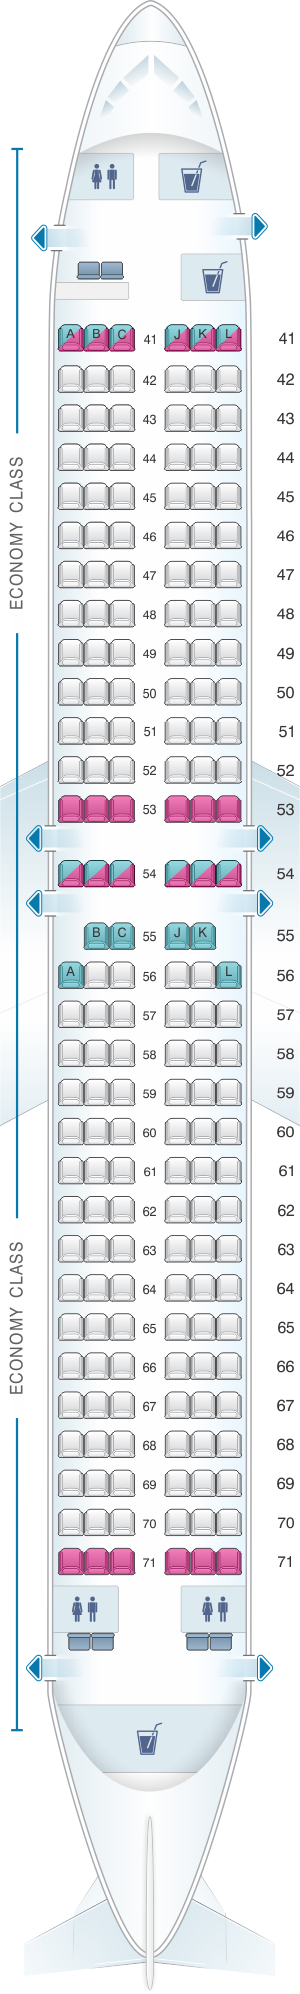 Seat map for Xiamen Airlines Boeing B737 800 184pax